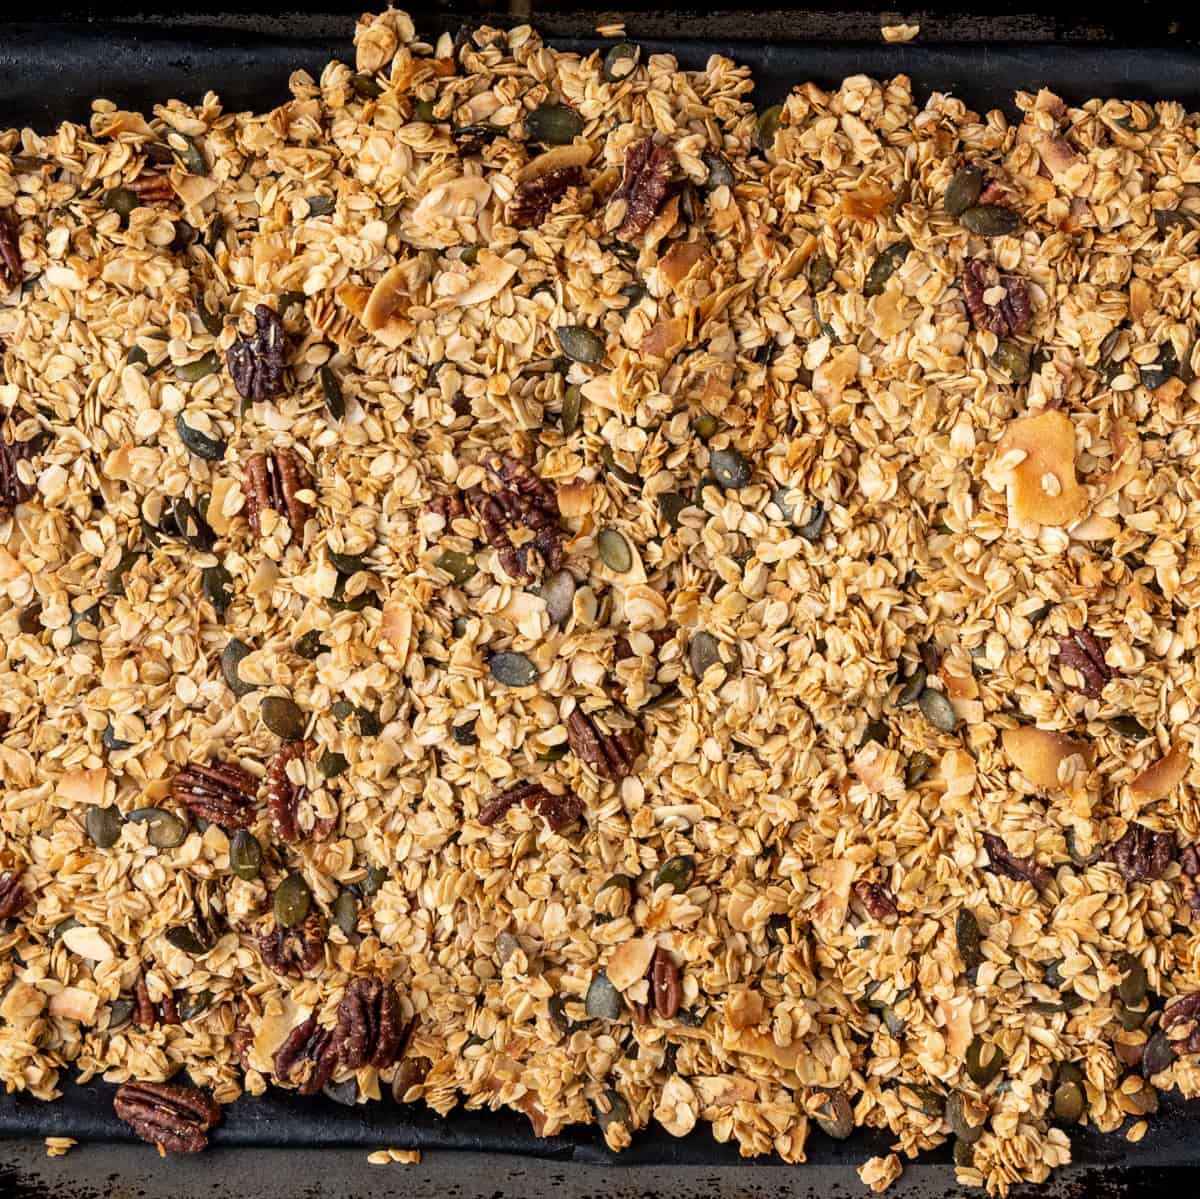 The tray of granola after baking to a golden brown colour.